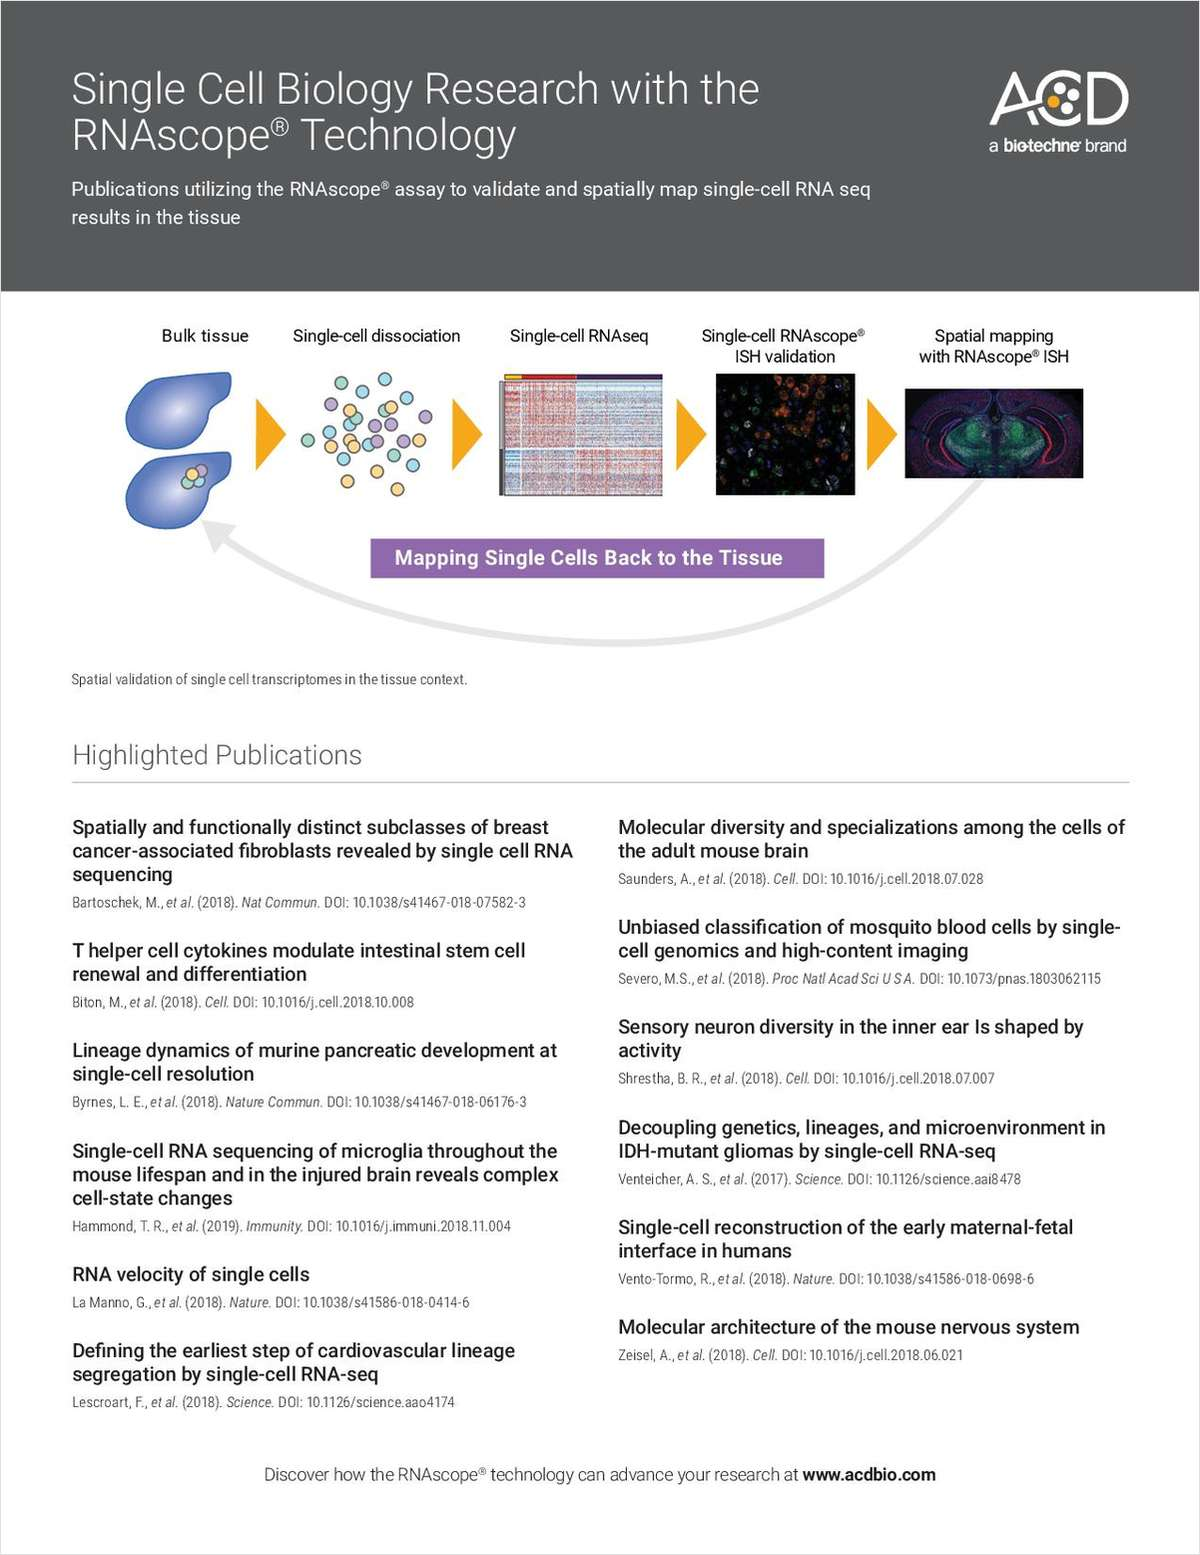 Publications Utilizing the RNAscope Assay to Validate and Spatially Map Single-cell RNA-Seq Results in the Tissue